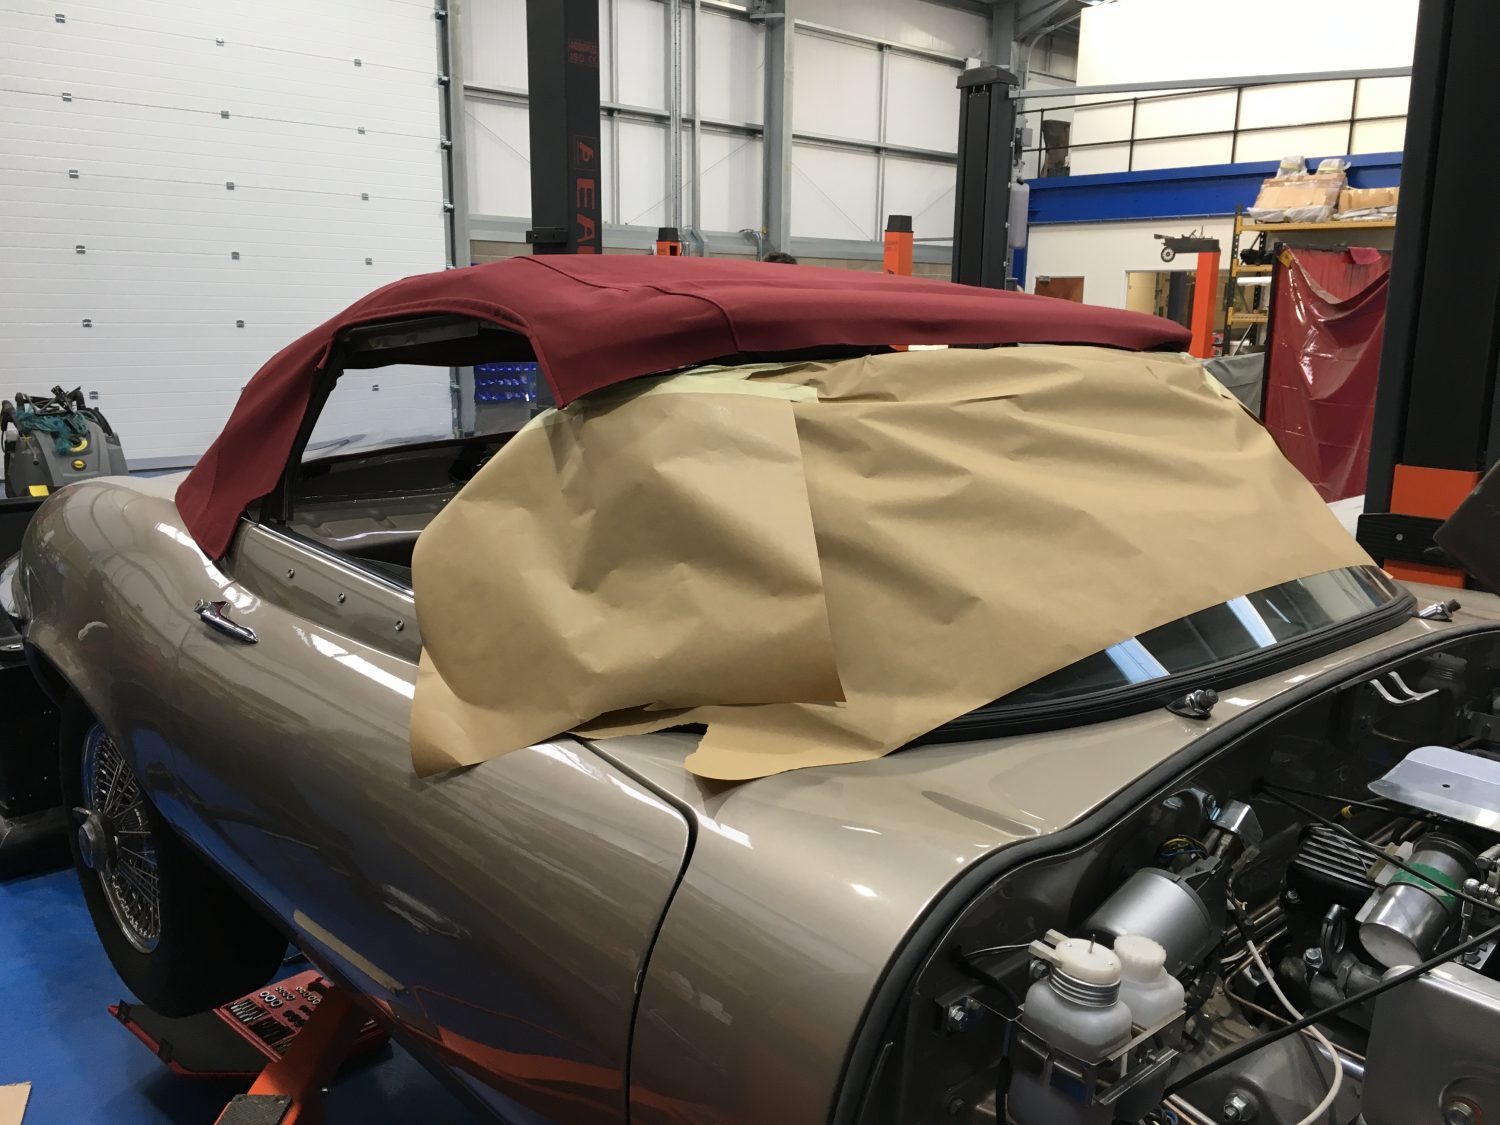 Fitting the hood and storage box in our Jaguar E-Type roadster